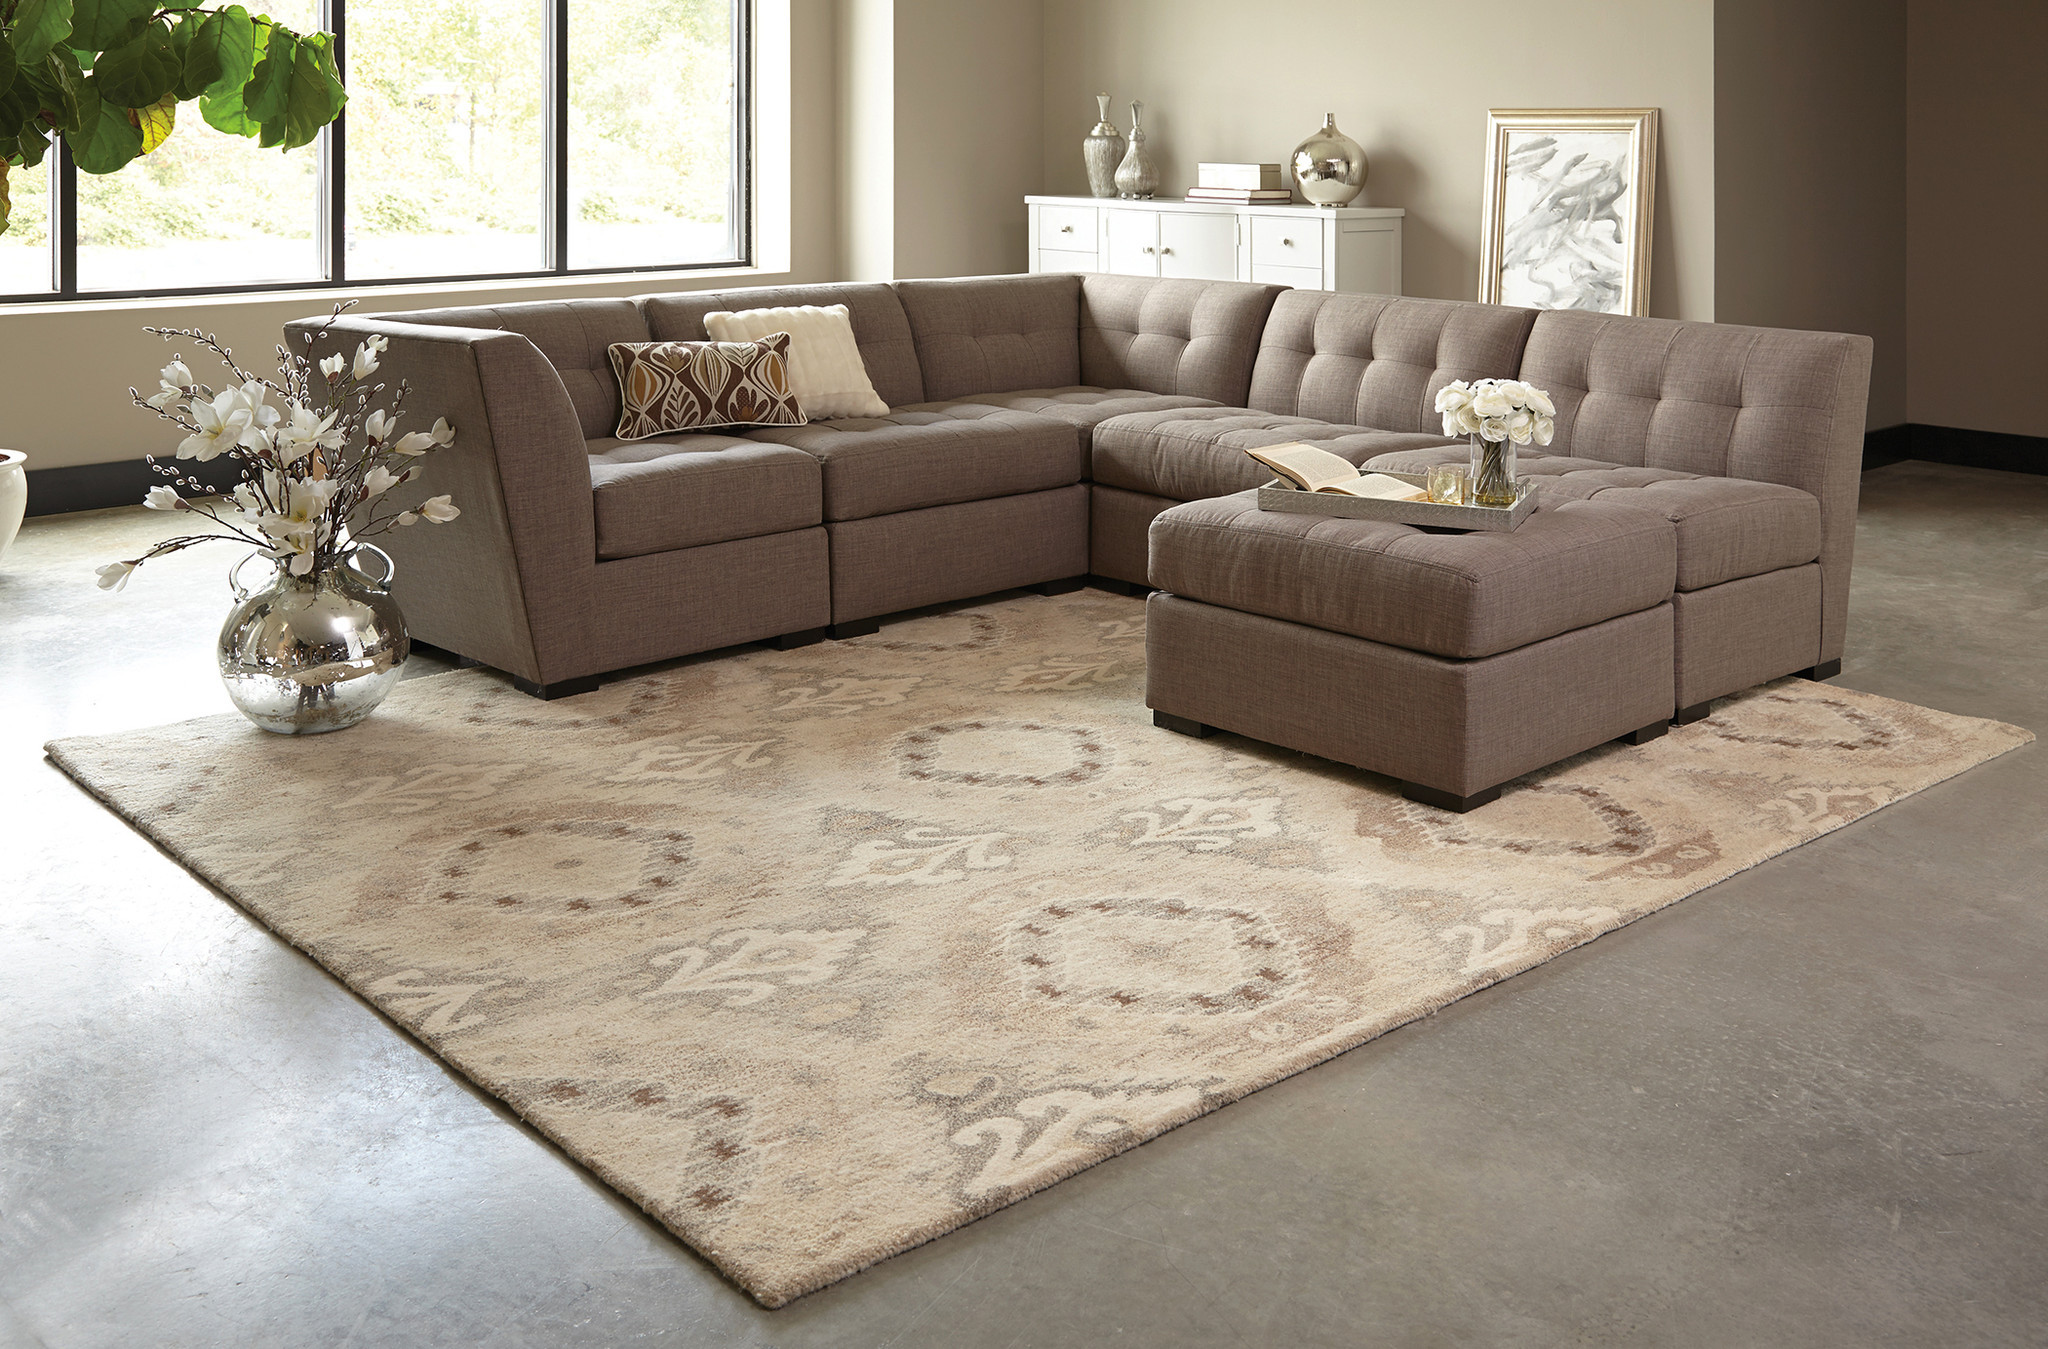 Best ideas about Family Room Rugs . Save or Pin Best area Rugs for Living Room 50 s Now.